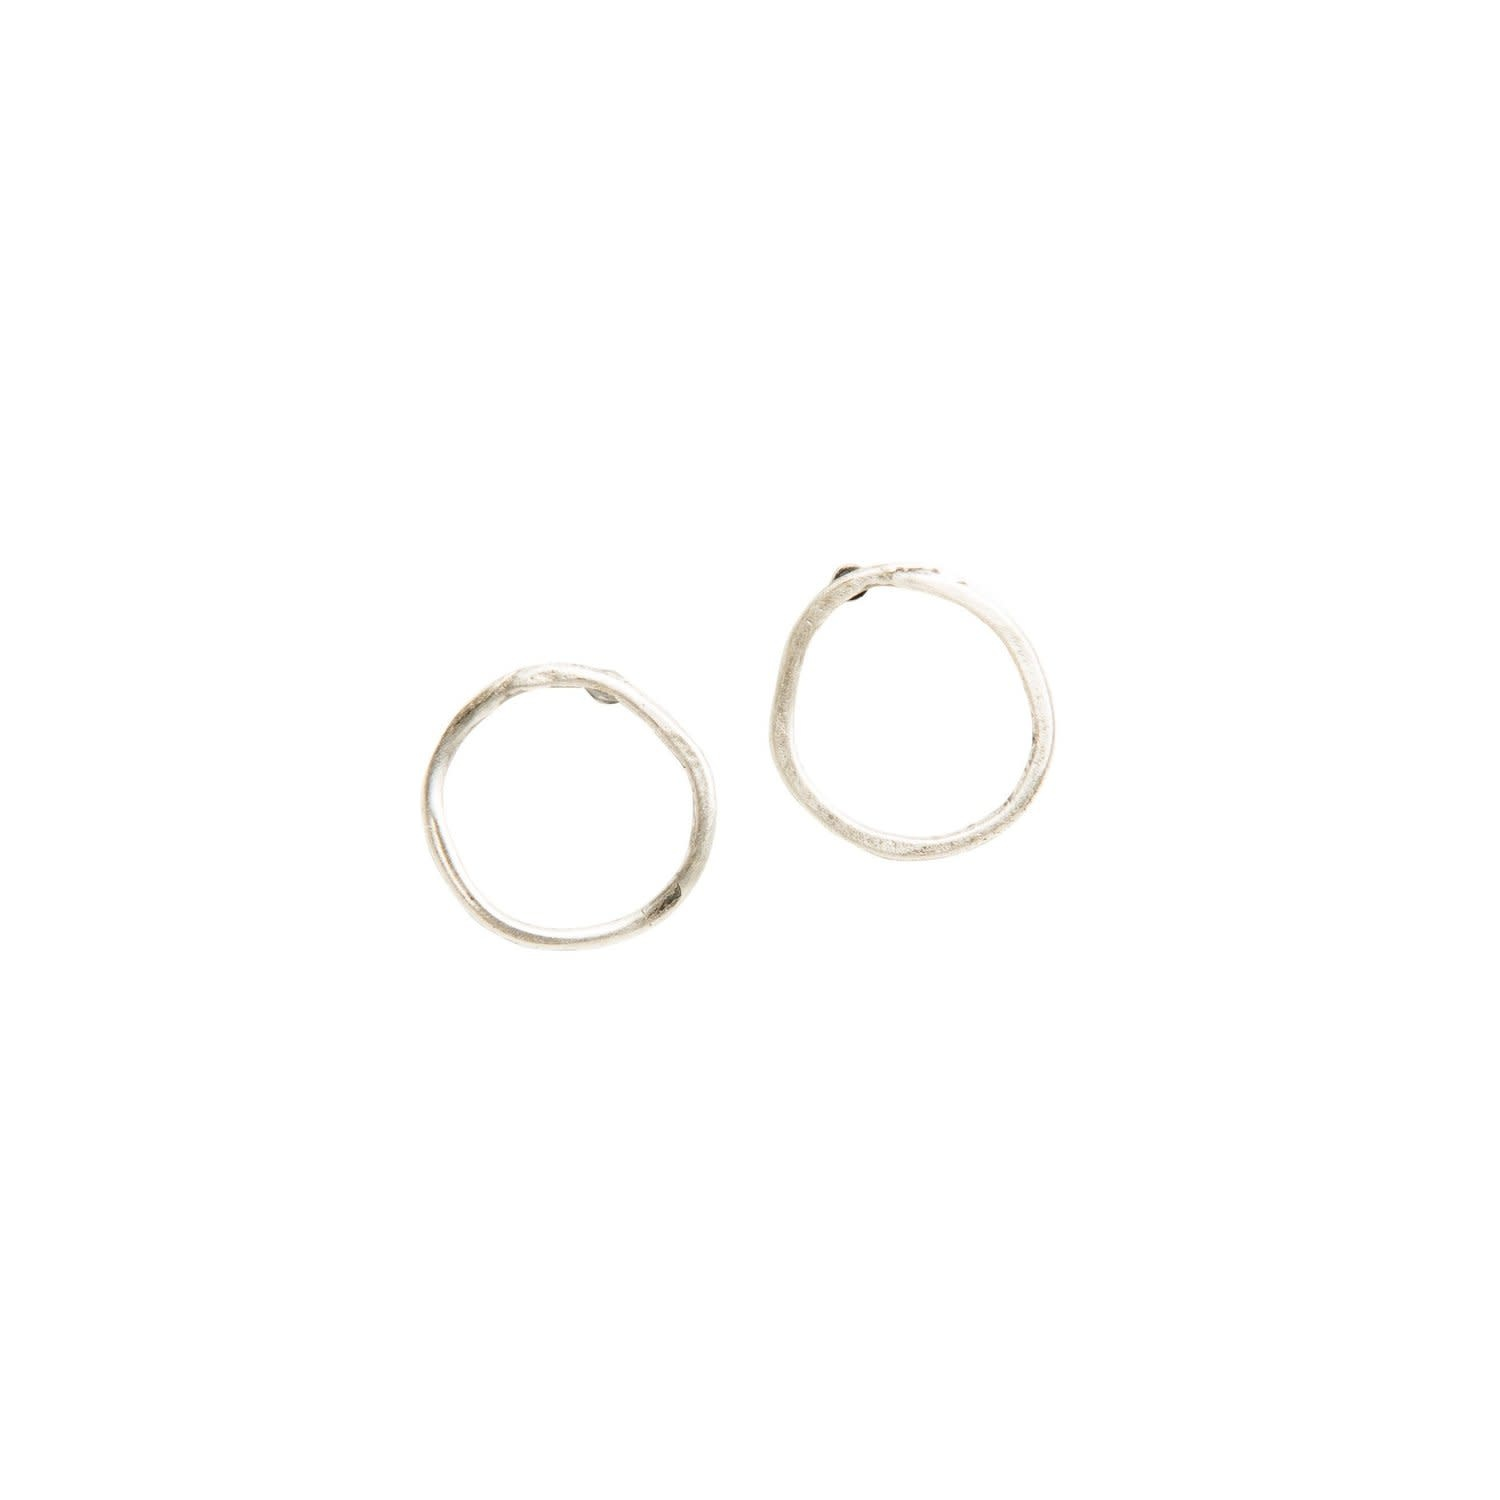 Original Hardware OH-Mini Cirlce earring